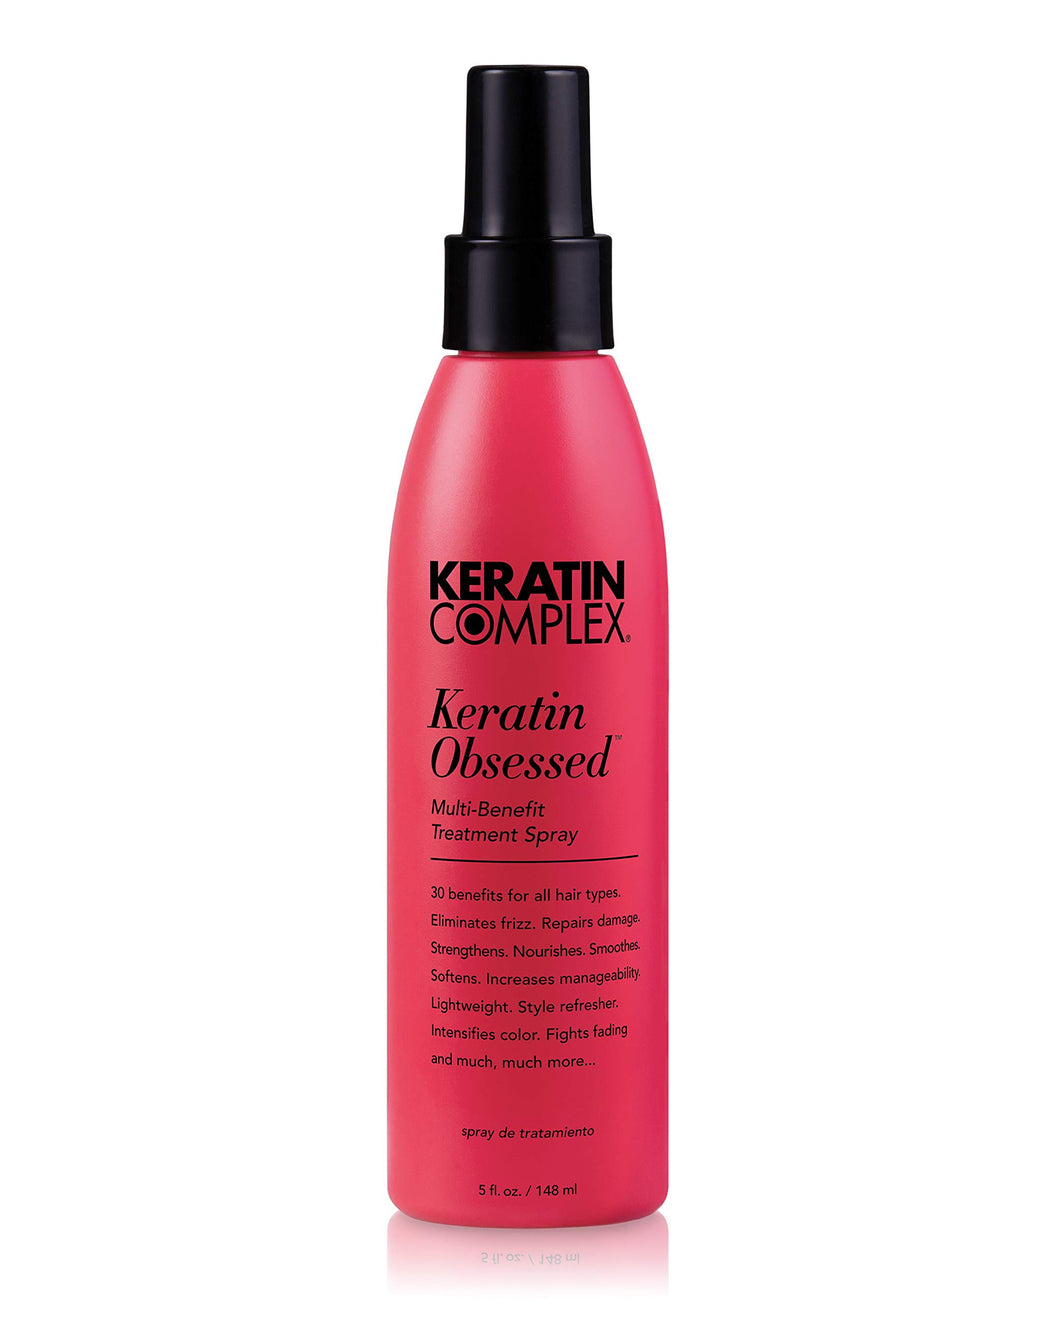 Keratin Complex Keratin Obsessed Multi-Benefit Treatment Spray, 5oz